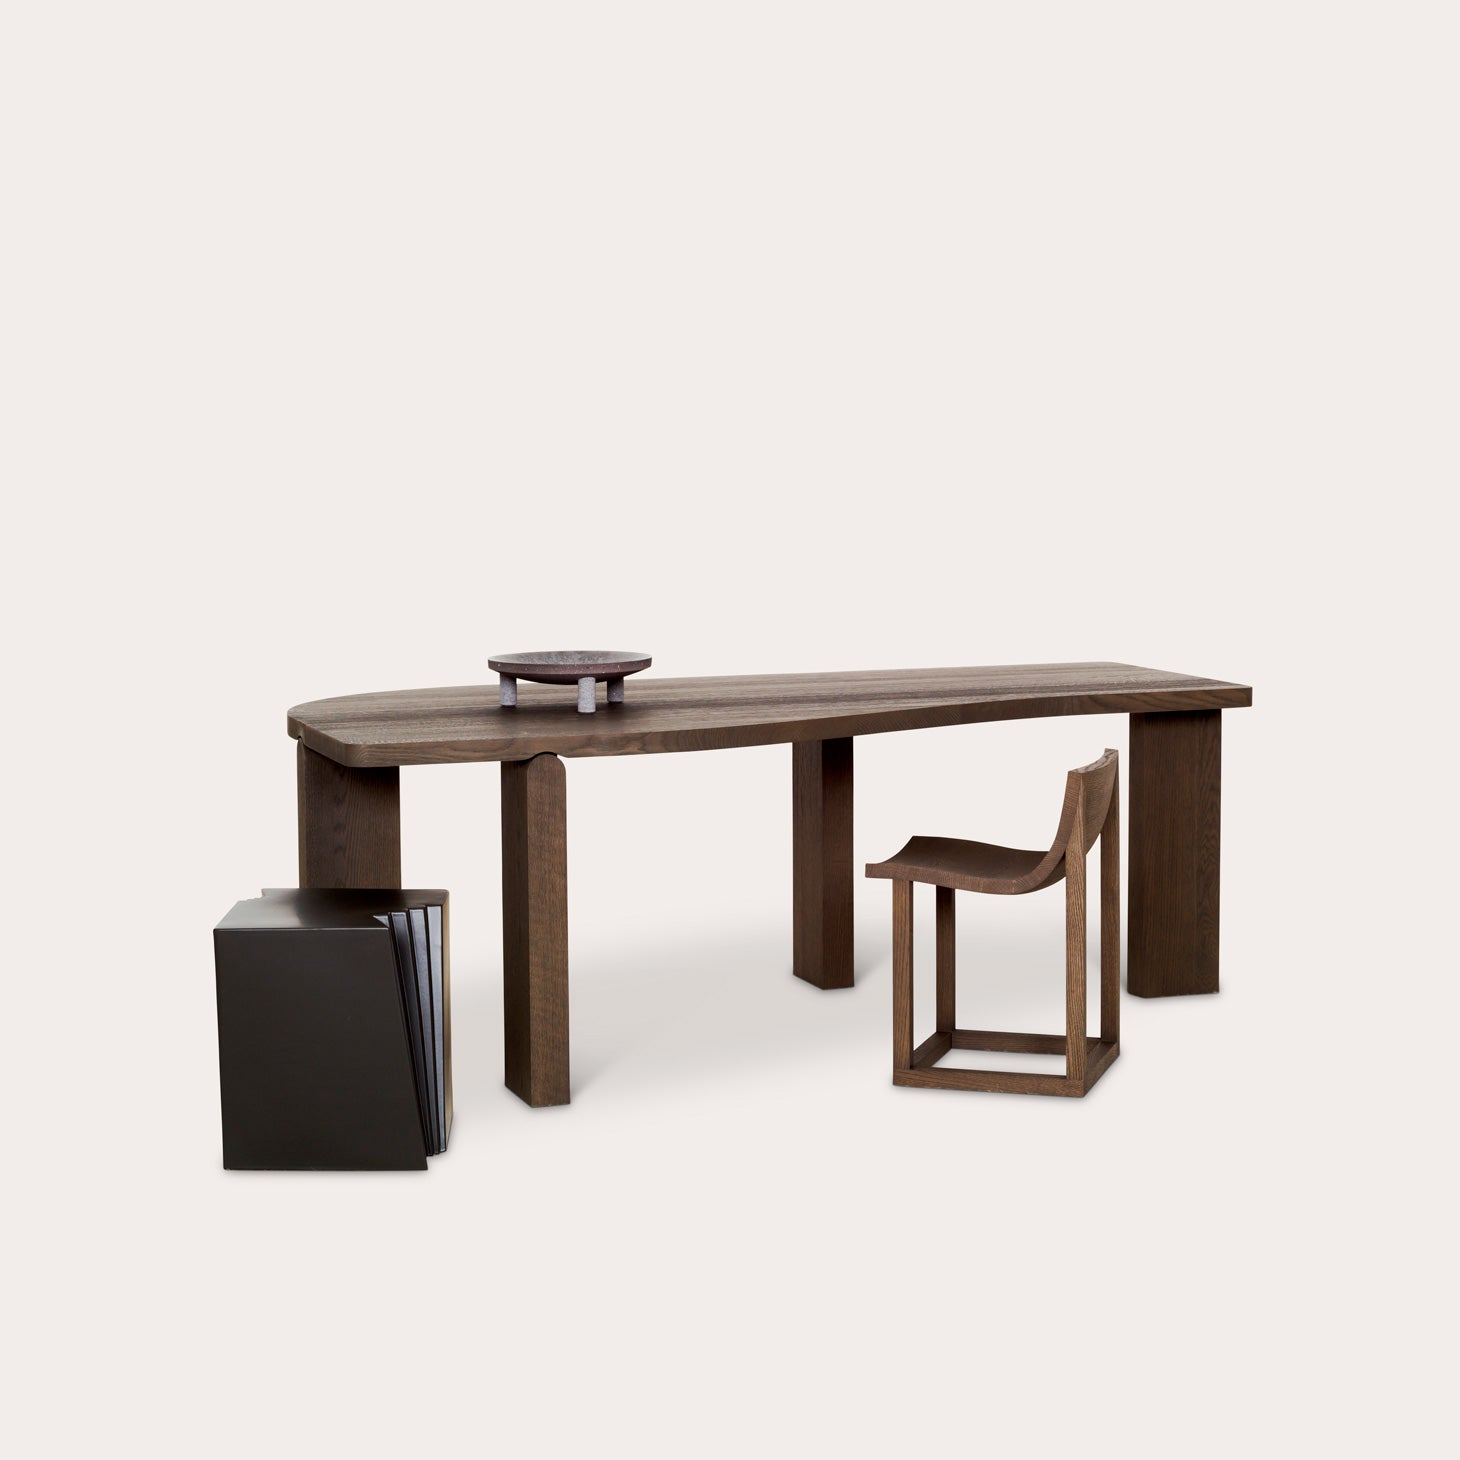 EDO Desk Tables Christophe Delcourt Designer Furniture Sku: 008-230-10494